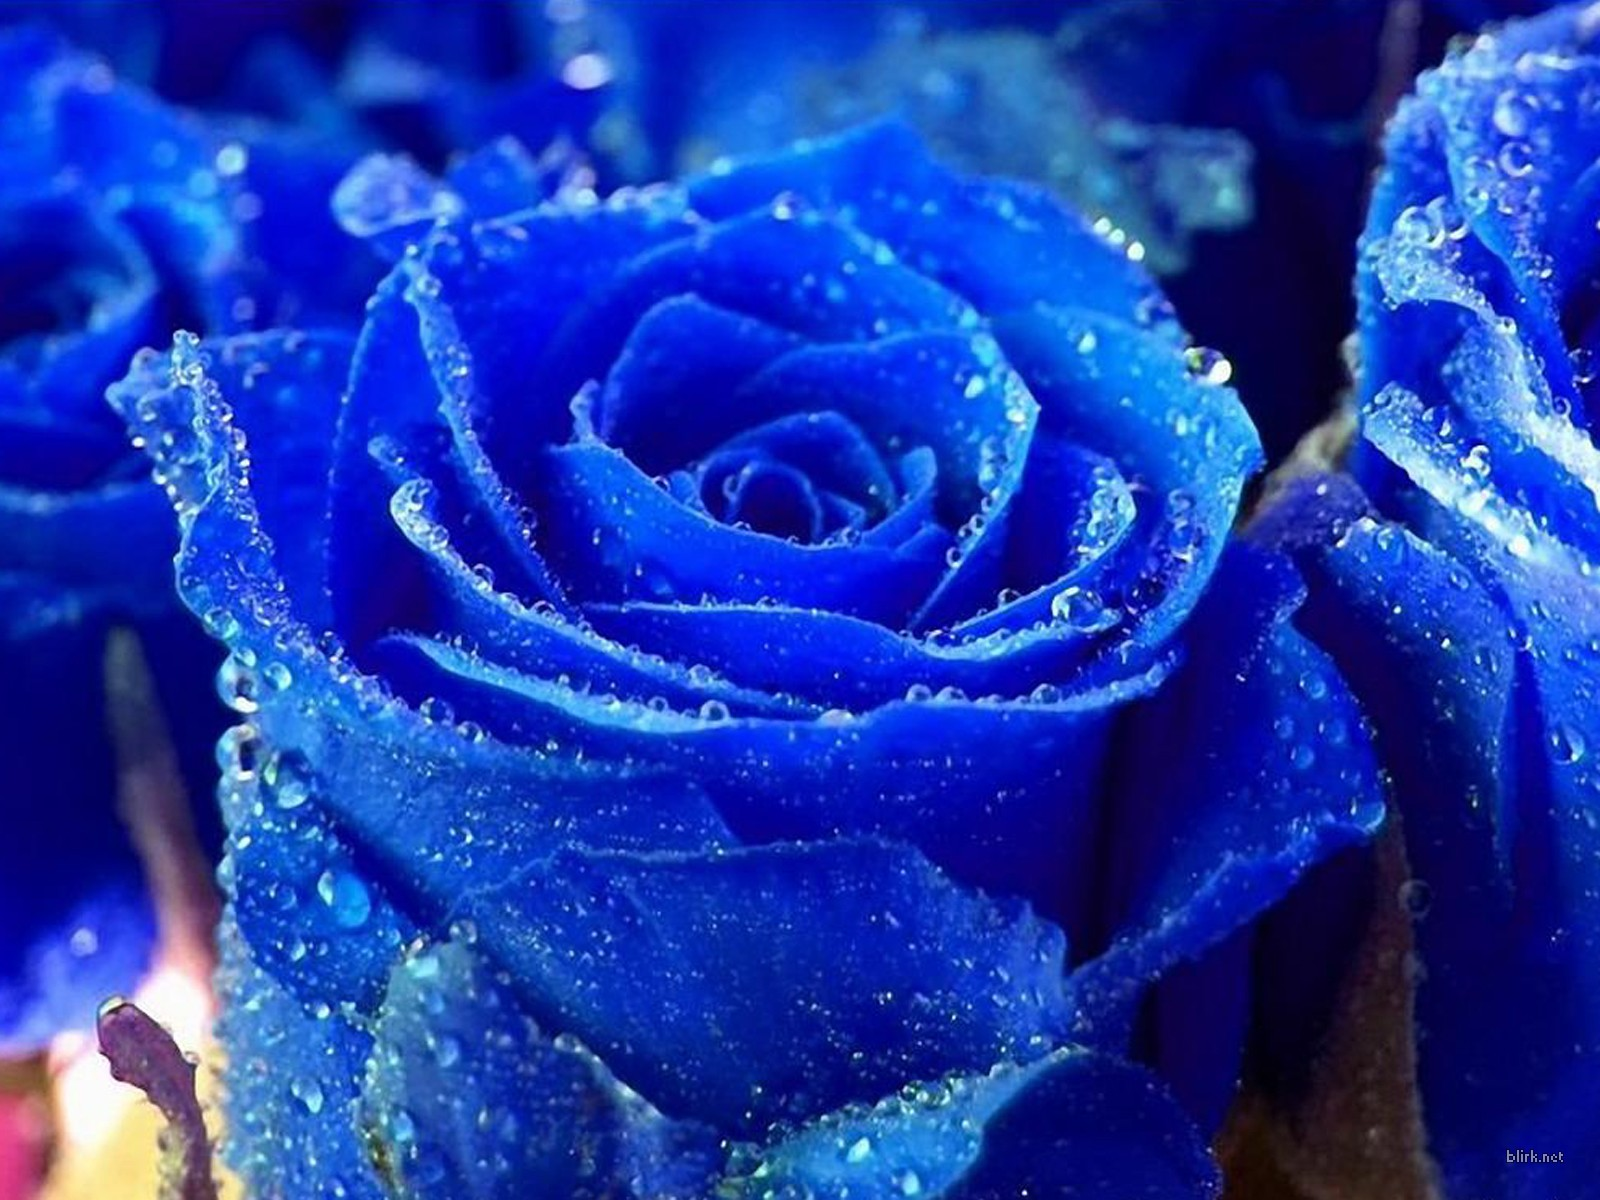 http://1.bp.blogspot.com/-0KDKTJiuEXU/TaROkvjgKvI/AAAAAAAADio/mO_8oq204_Y/s1600/beautiful-blue-rose-wallpaper.jpg